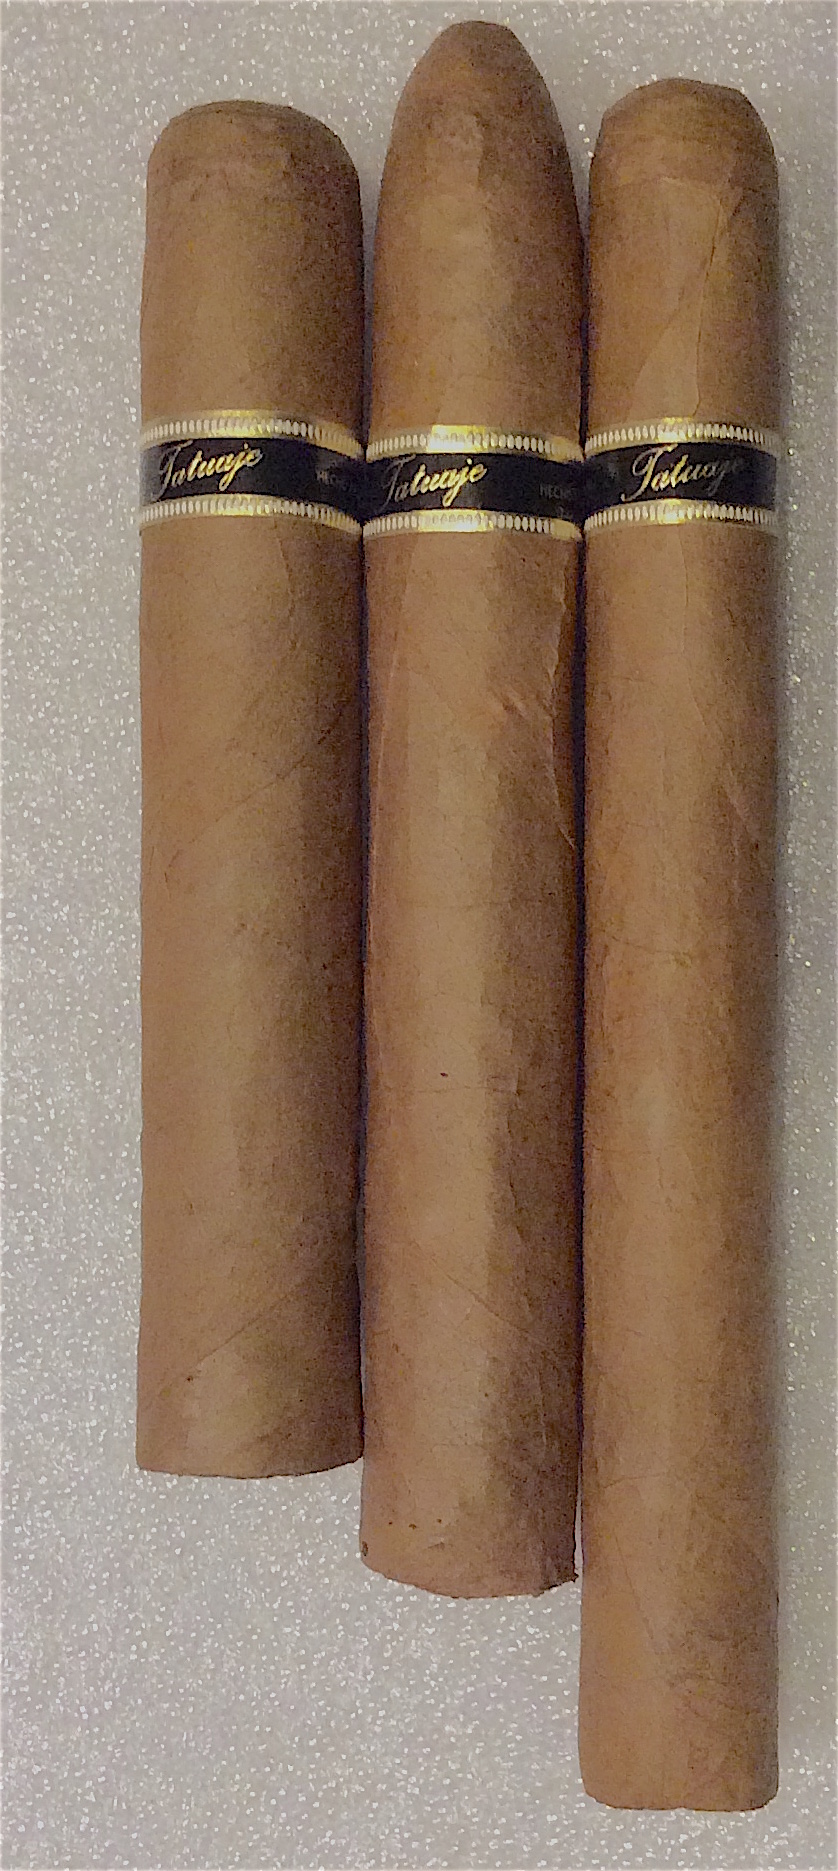 Negotiant Monopole by Tatuaje and L'Atelier Imports